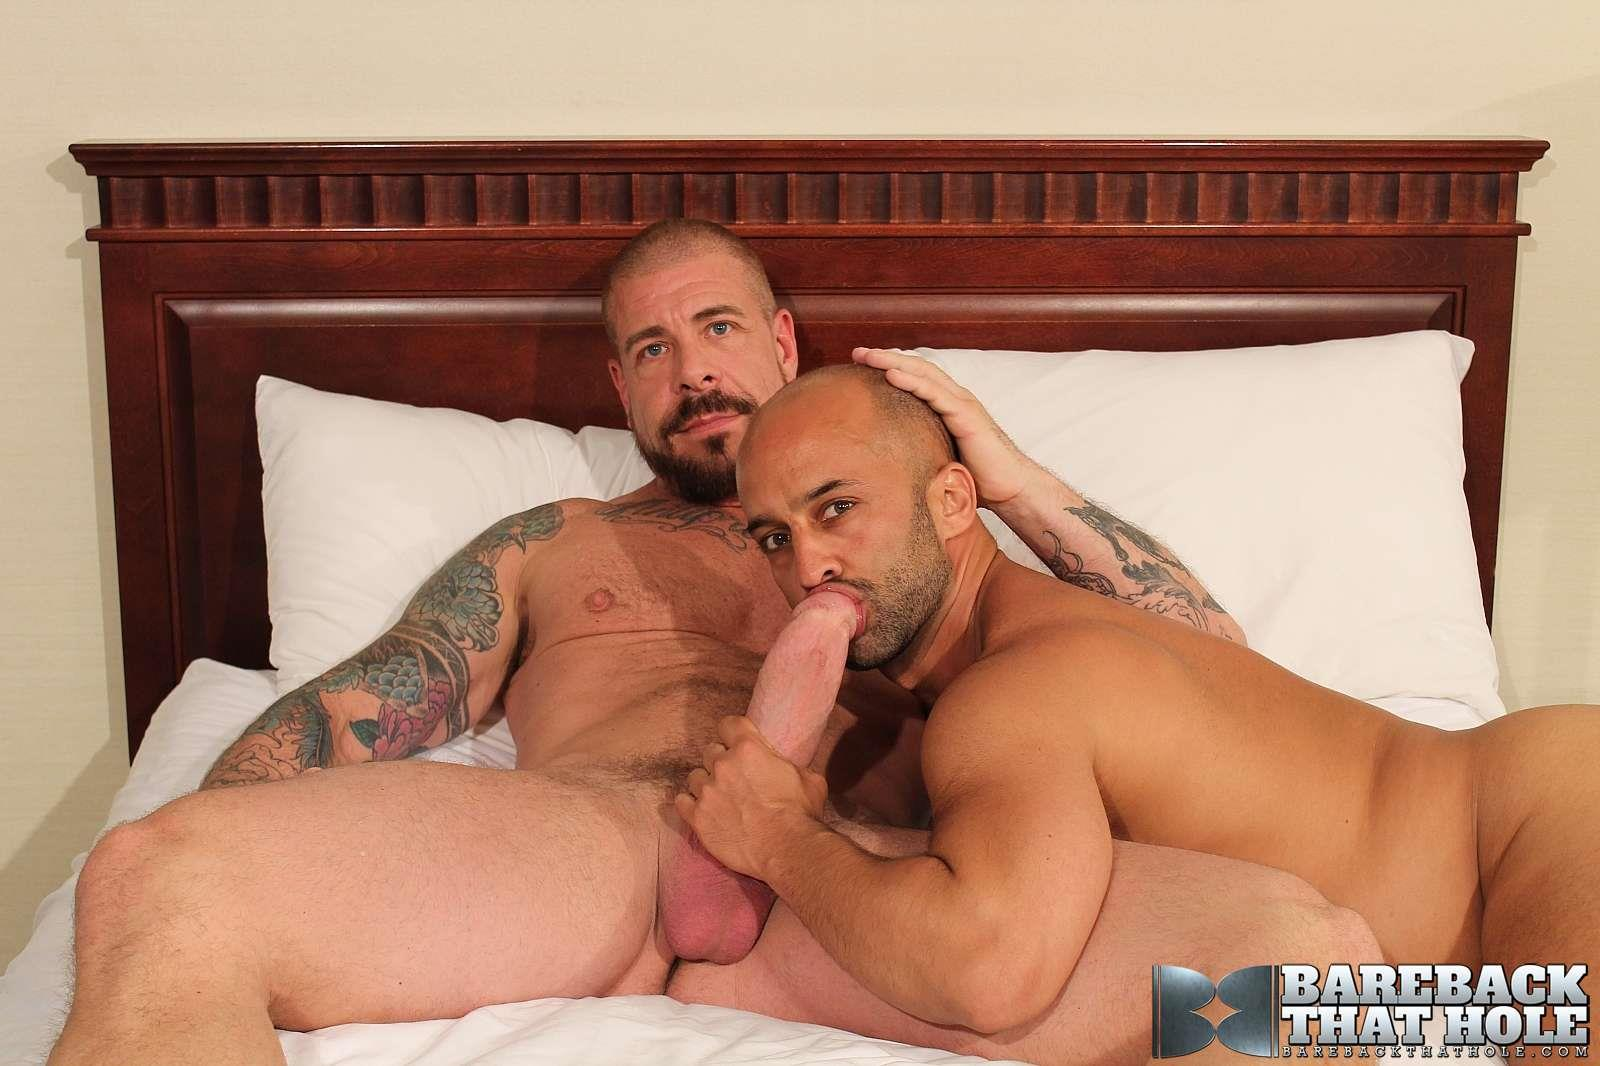 Bareback That Hole Bareback That Hole Rocco Steele and Igor Lukas Huge Cock Barebacking A Tight Ass Amateur Gay Porn 19 Rocco Steele Tearing Up A Tight Ass With His Huge Cock